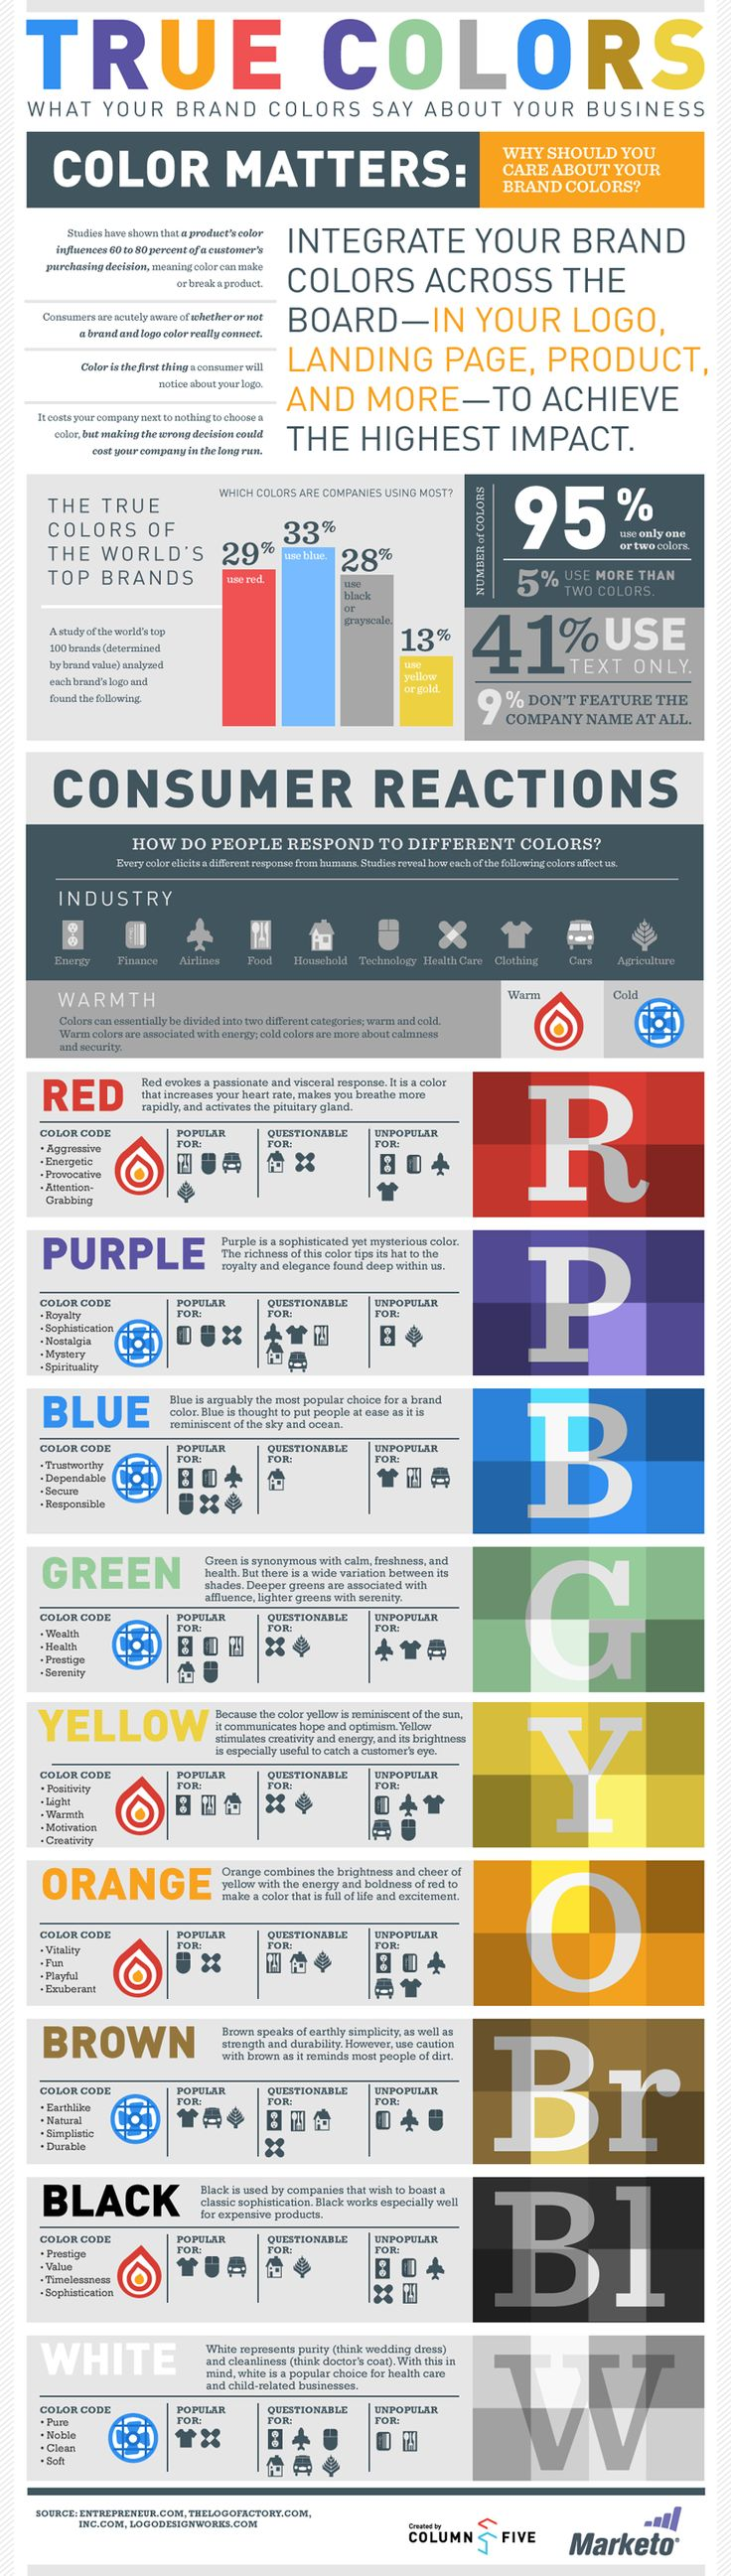 When it comes to branding, the main backbone of a strong and easily recognizable identity is expressing the right colors through a ingenious graphic design. Without it, the majority of popular brands would not exist in the form as we know them today. So, what do colors say about your brand? Marketo recently conducted a research that they presented in a form of an infographic, showing why brand colors are important.